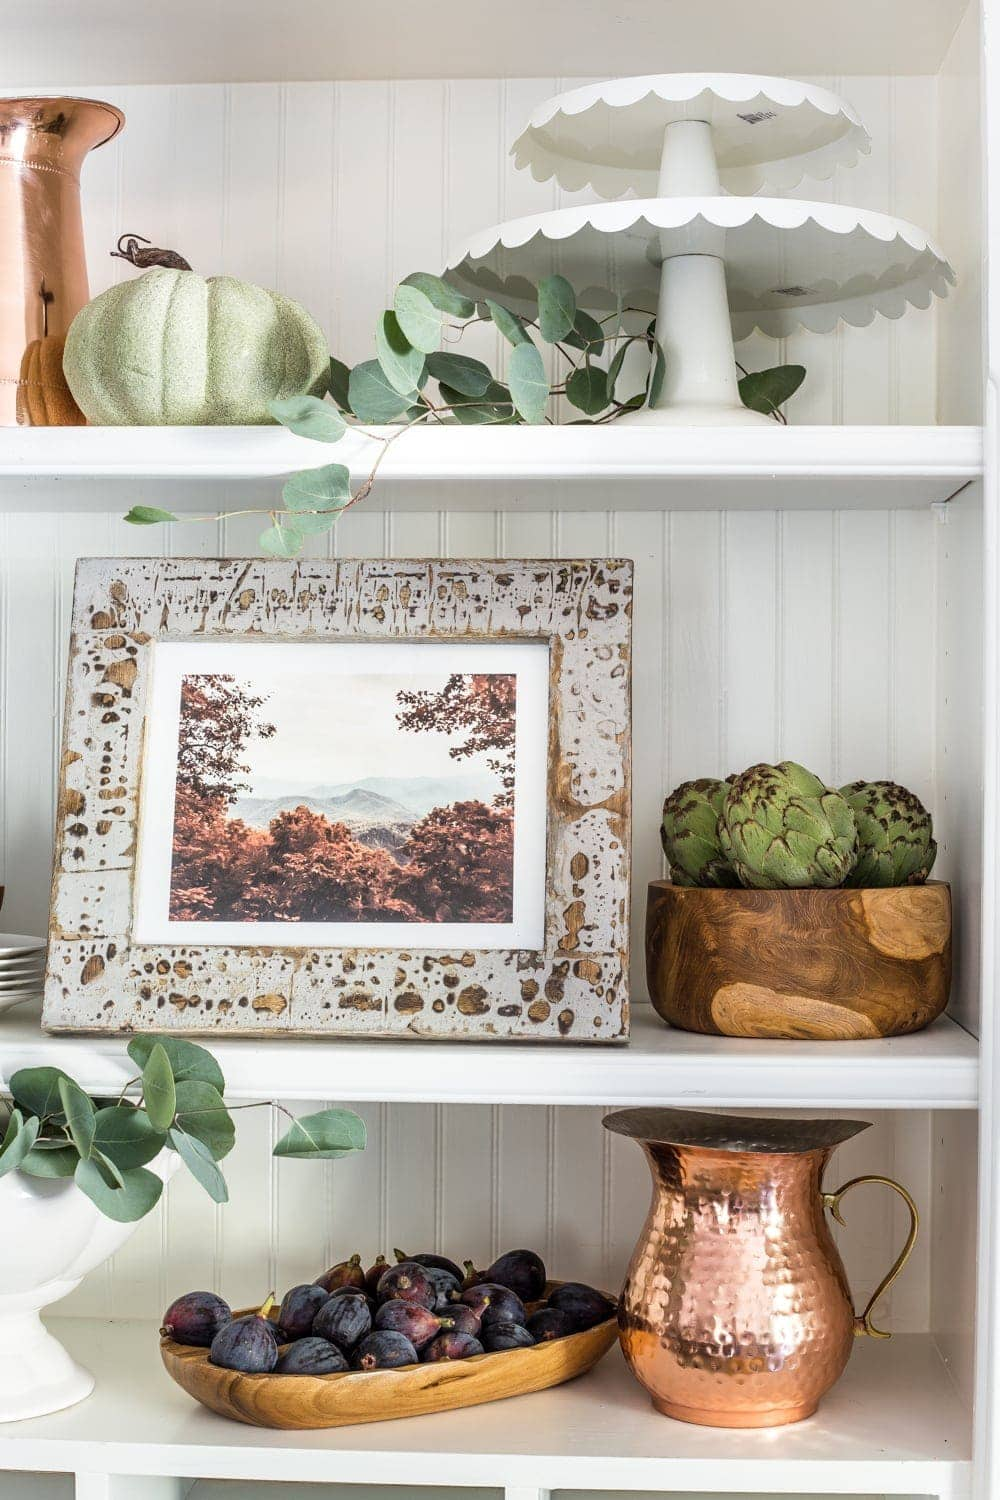 Autumn mountain landscape art printable and fall kitchen shelf vignette + more free fall printables